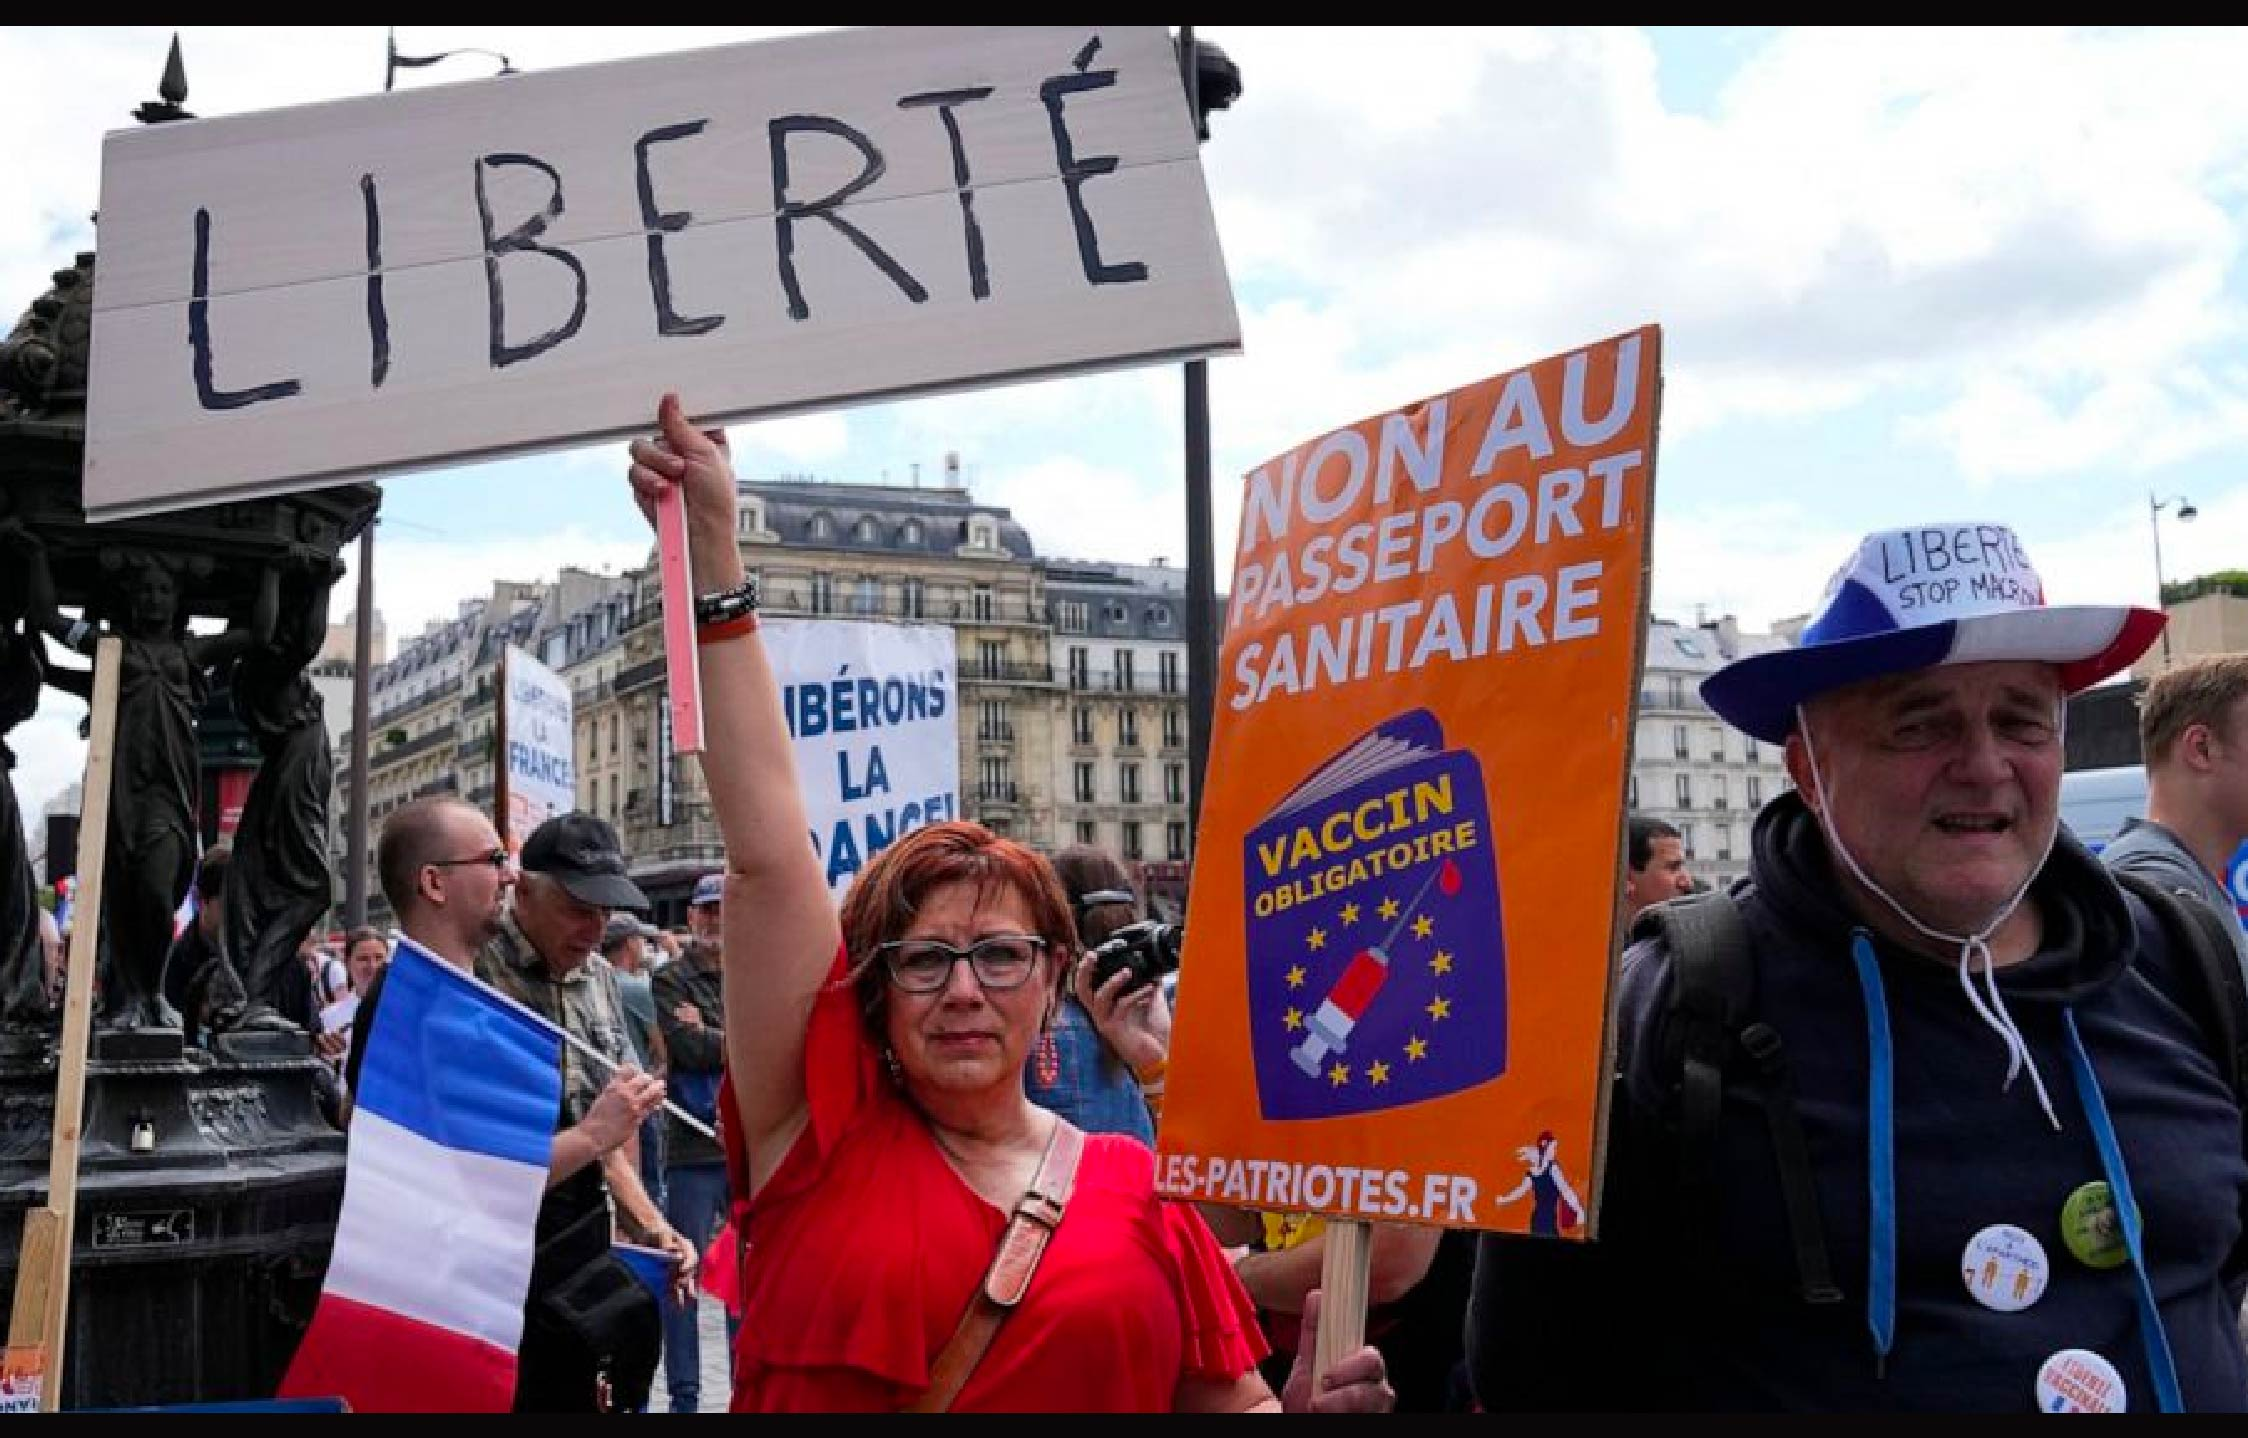 French Protesters Show Their Hatred of Joe Biden With Damning Image